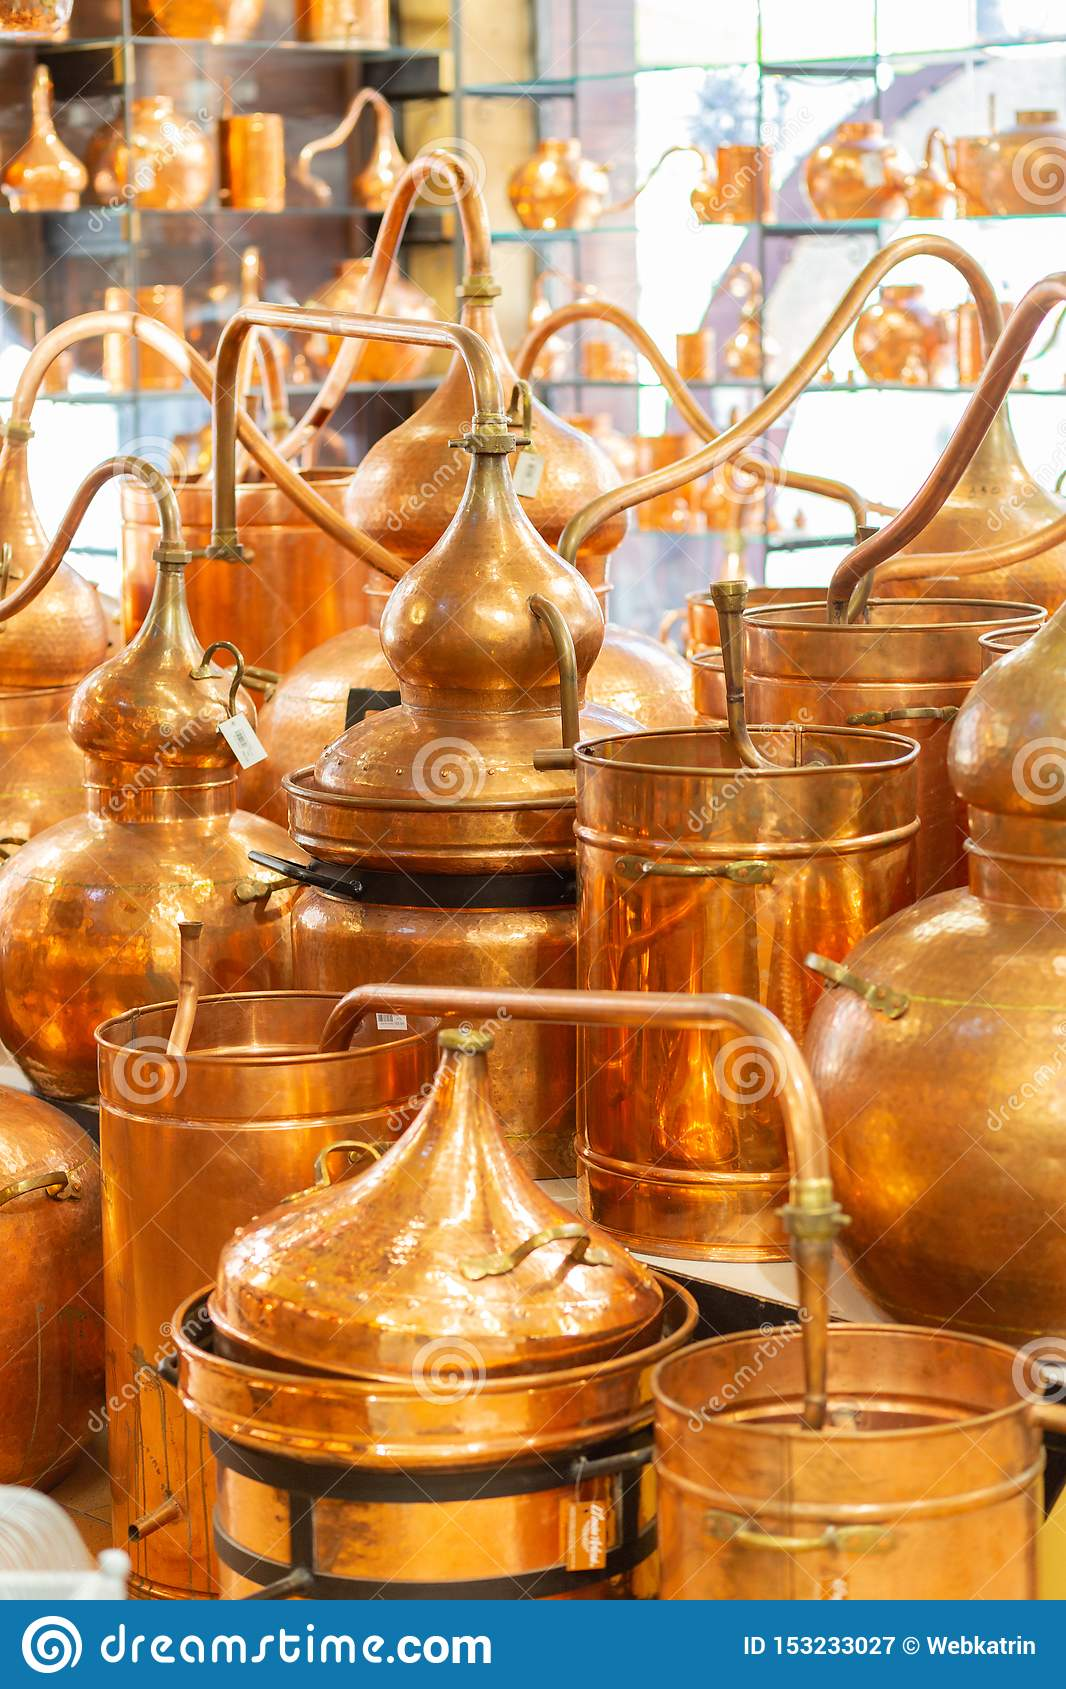 Copper ware, serpentine and jugs on the shop window in the store.